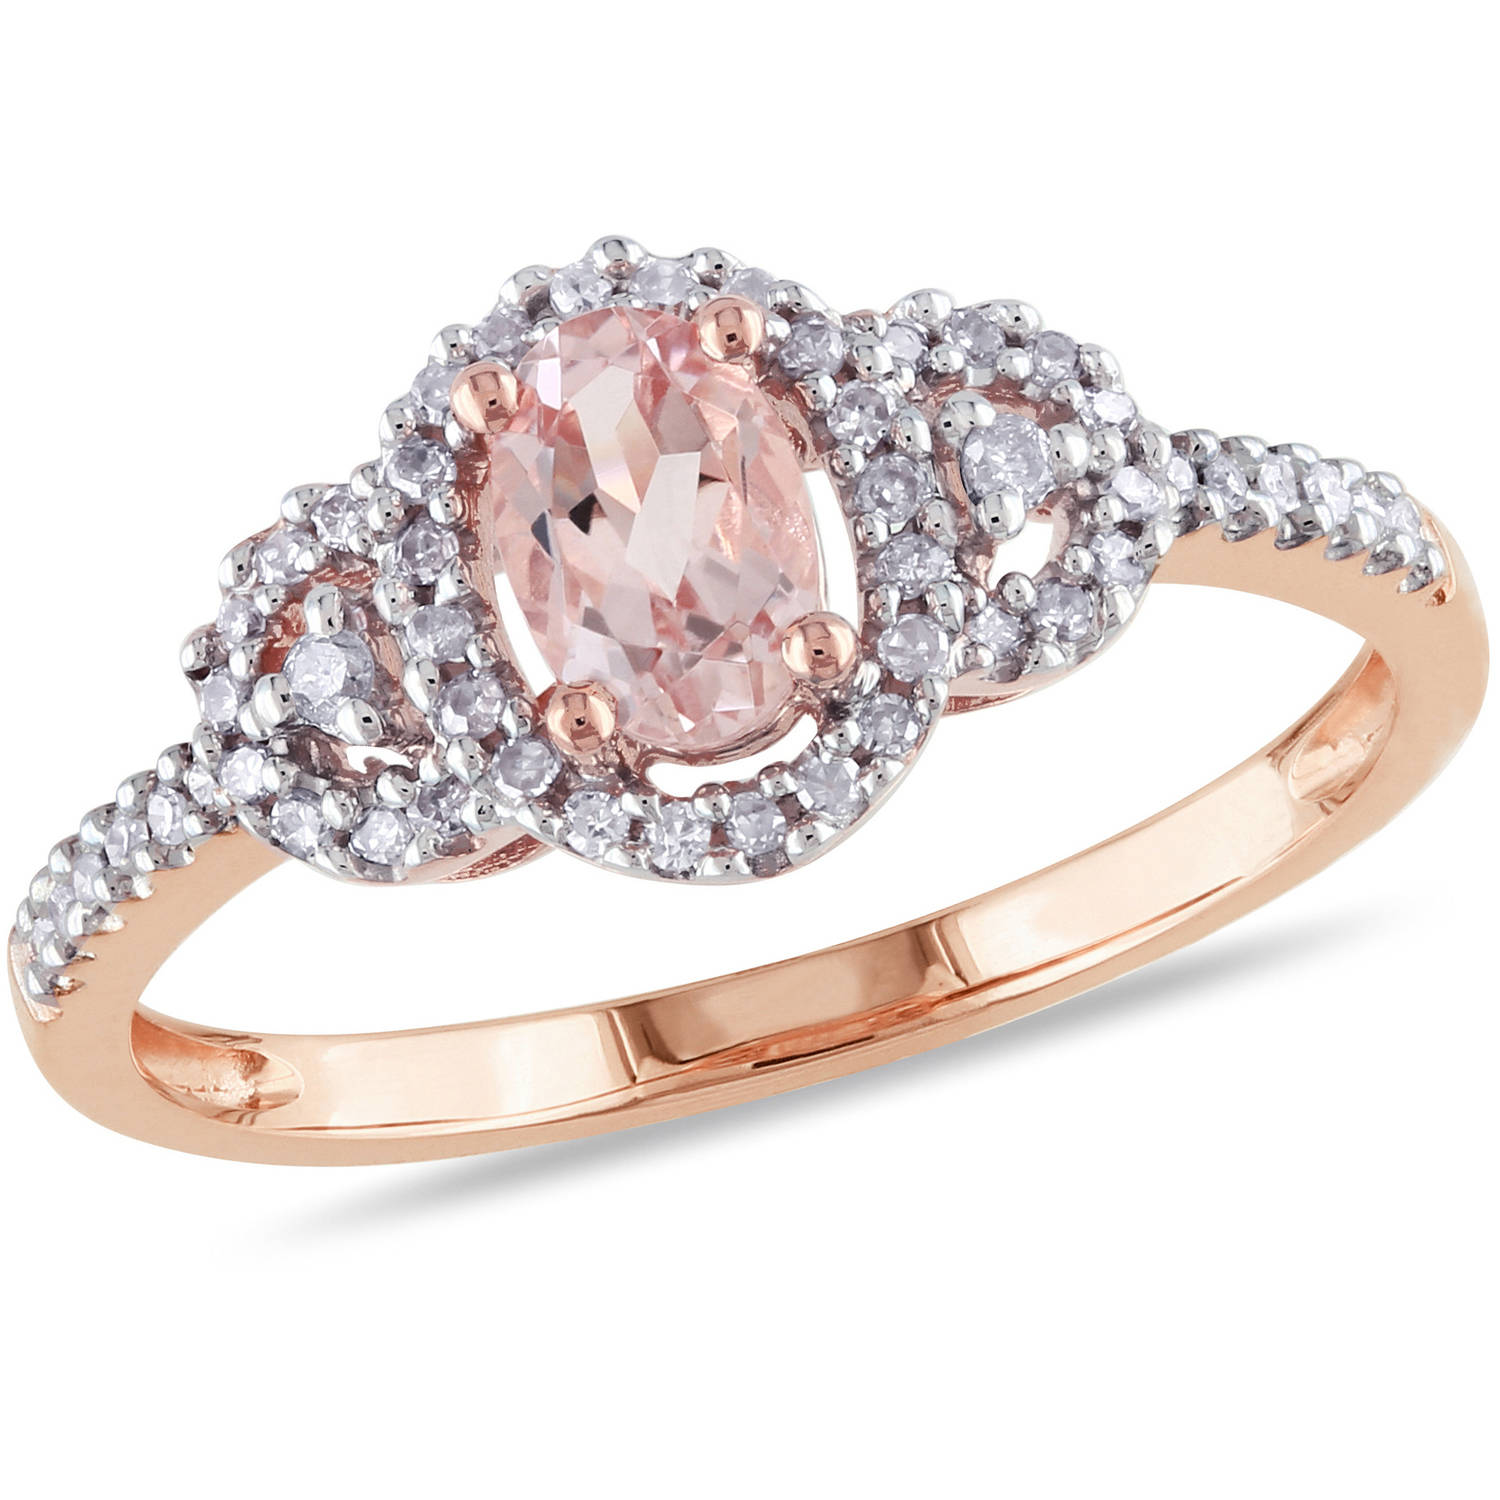 1 2 Carat T.G.W. Oval-Cut Morganite and 1 6 Carat T.W. Diamond 10kt Pink Gold Halo Cocktail Ring by Delmar Manufacturing LLC